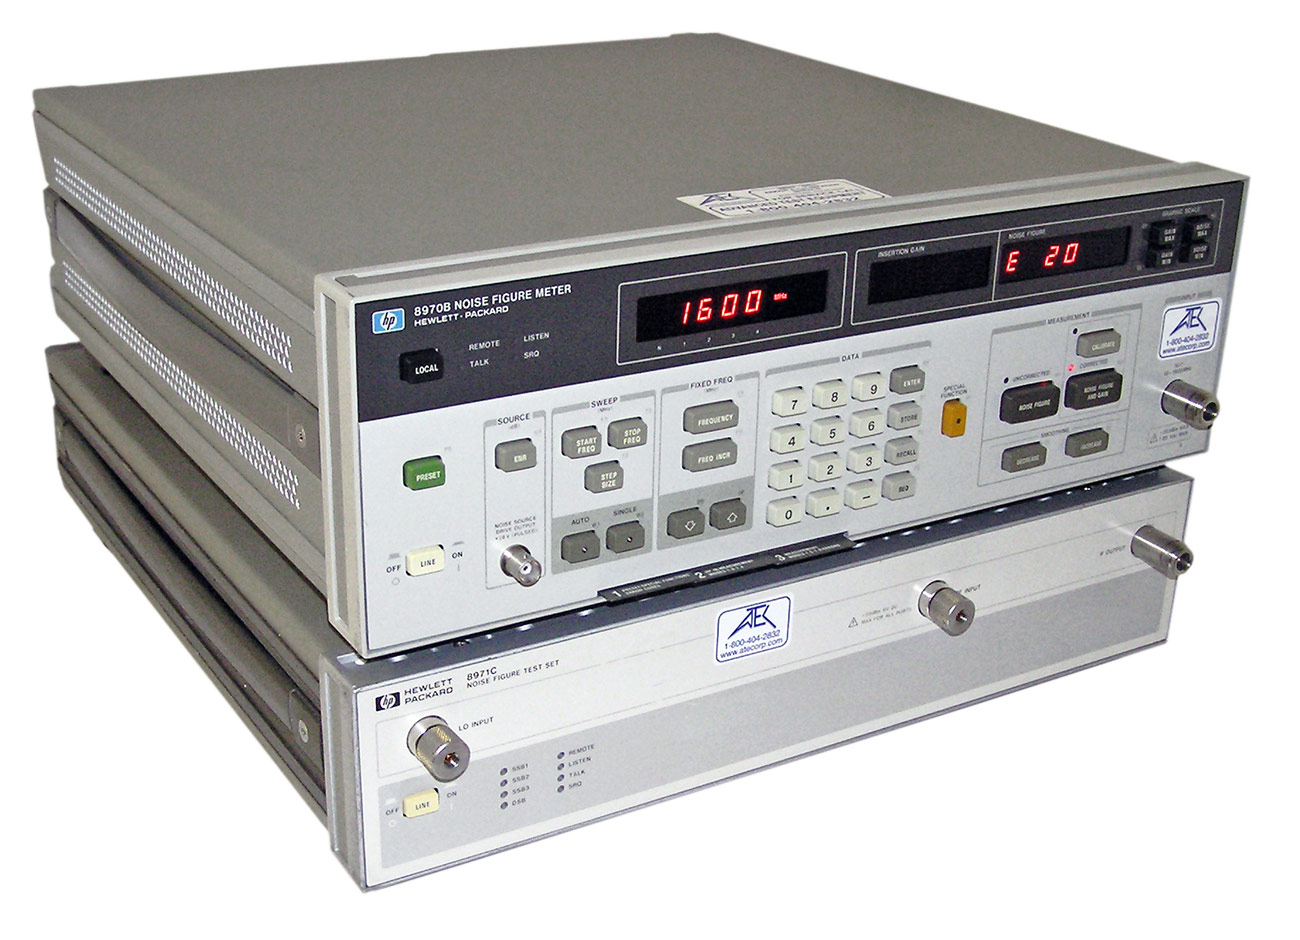 Keysight 8970B Noise Figure Meter, 10 MHz - 1.6 GHz